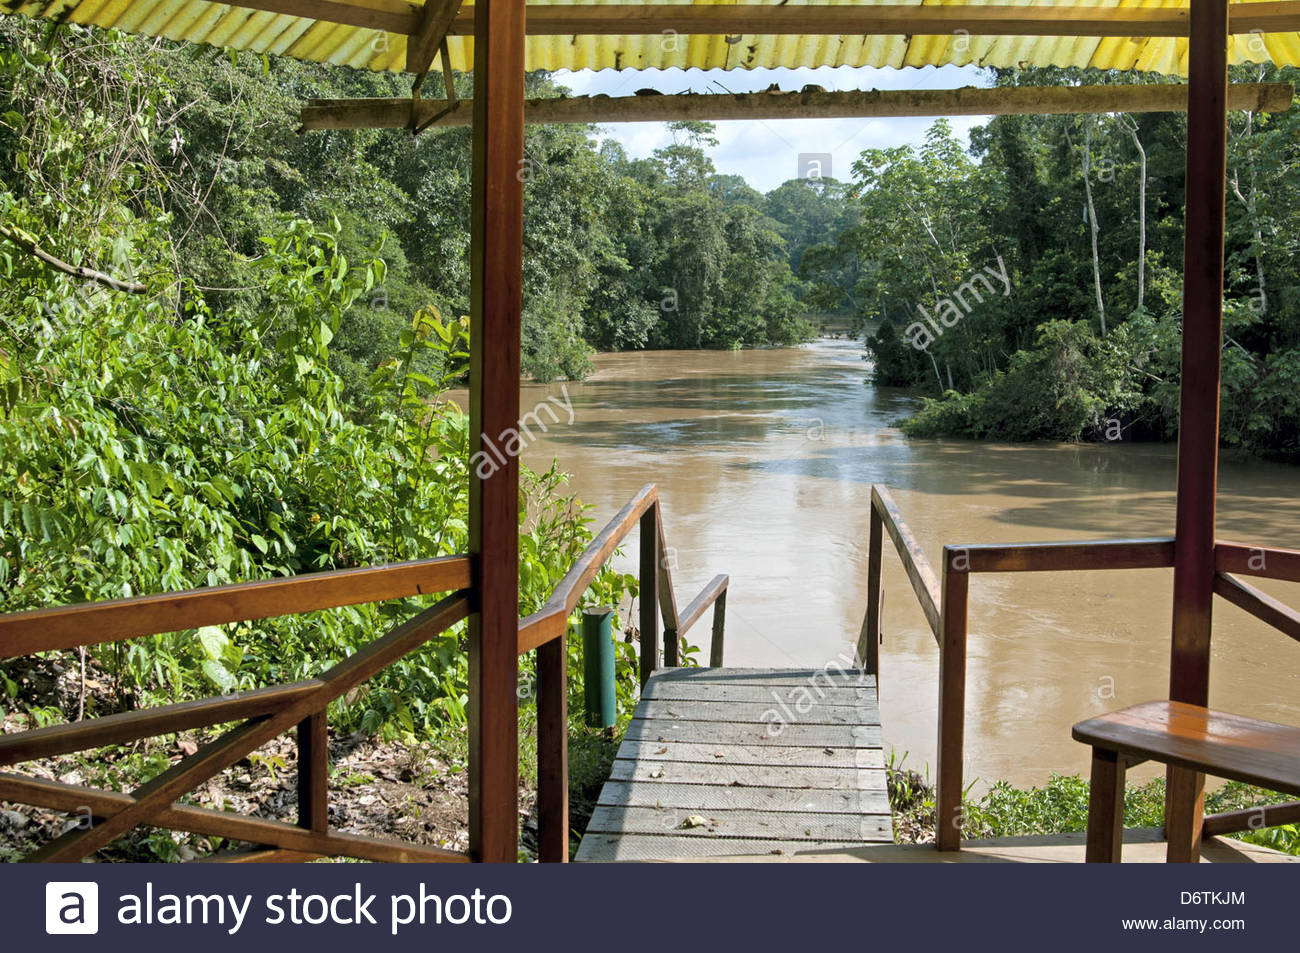 Amazon Rainforest Research Stock Photos & Amazon ... | 1300 x 953 jpeg 306kB